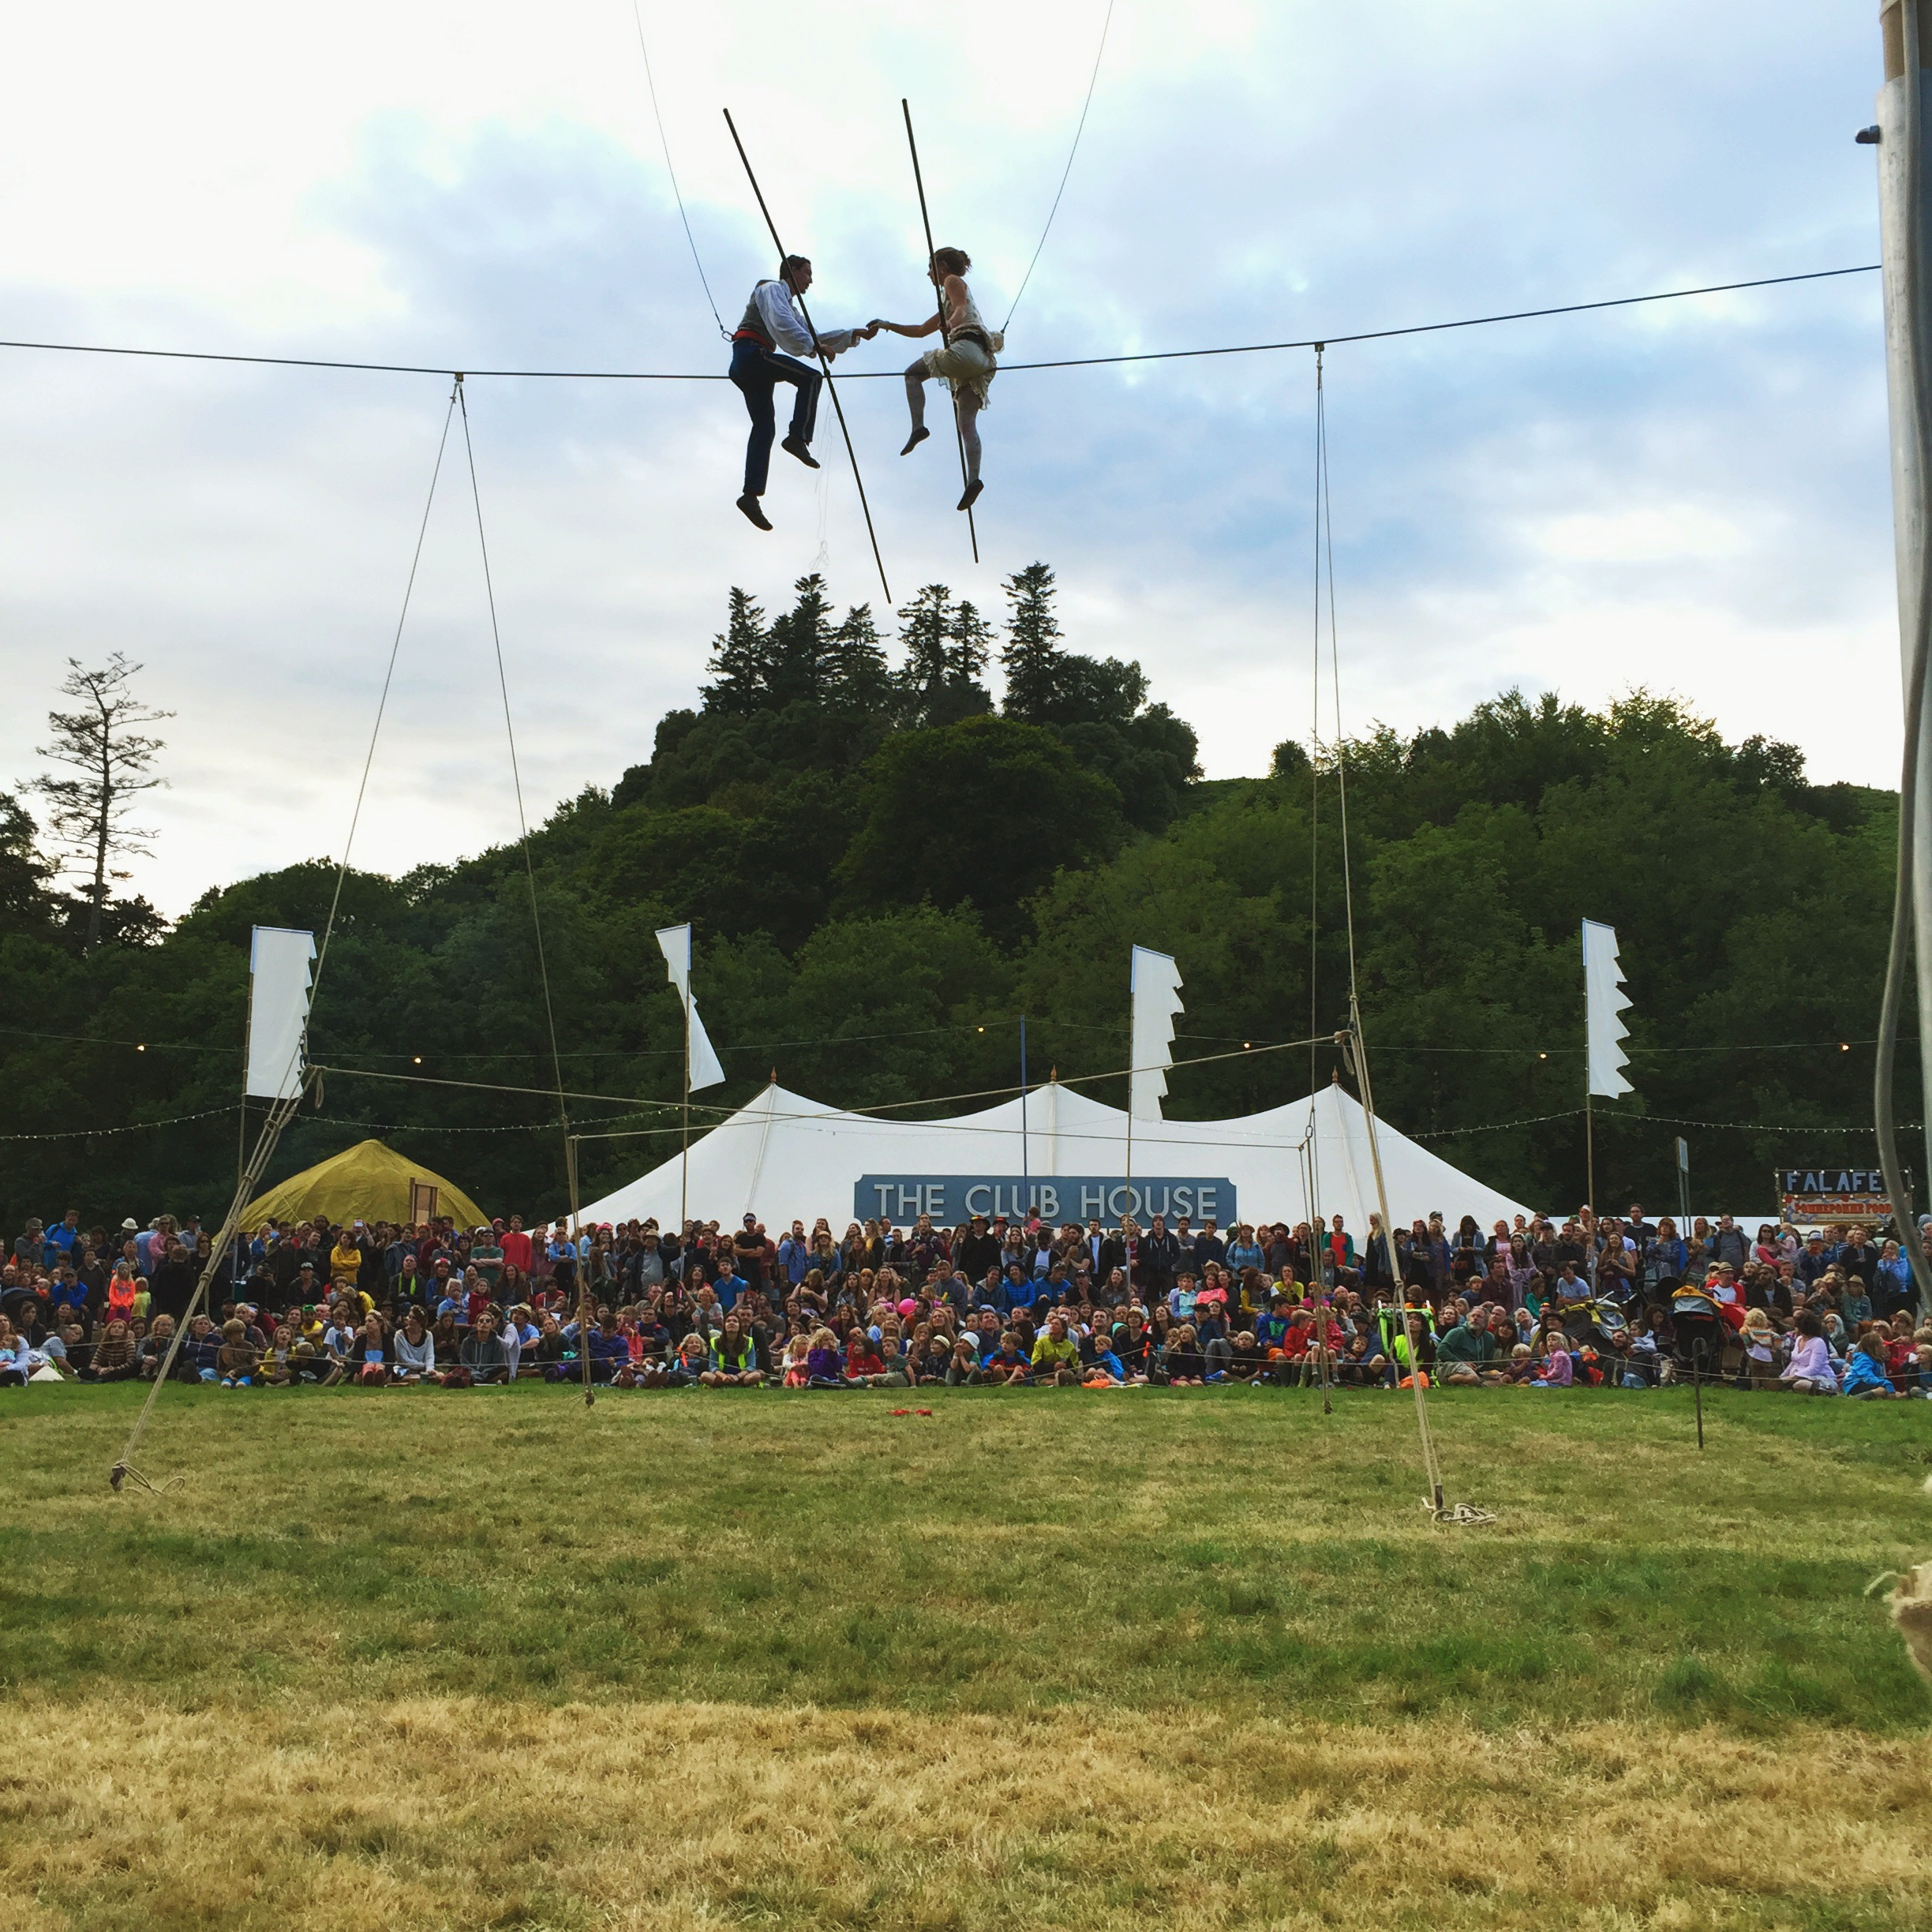 There were also a couple who did some fantastic performances on a tight rope